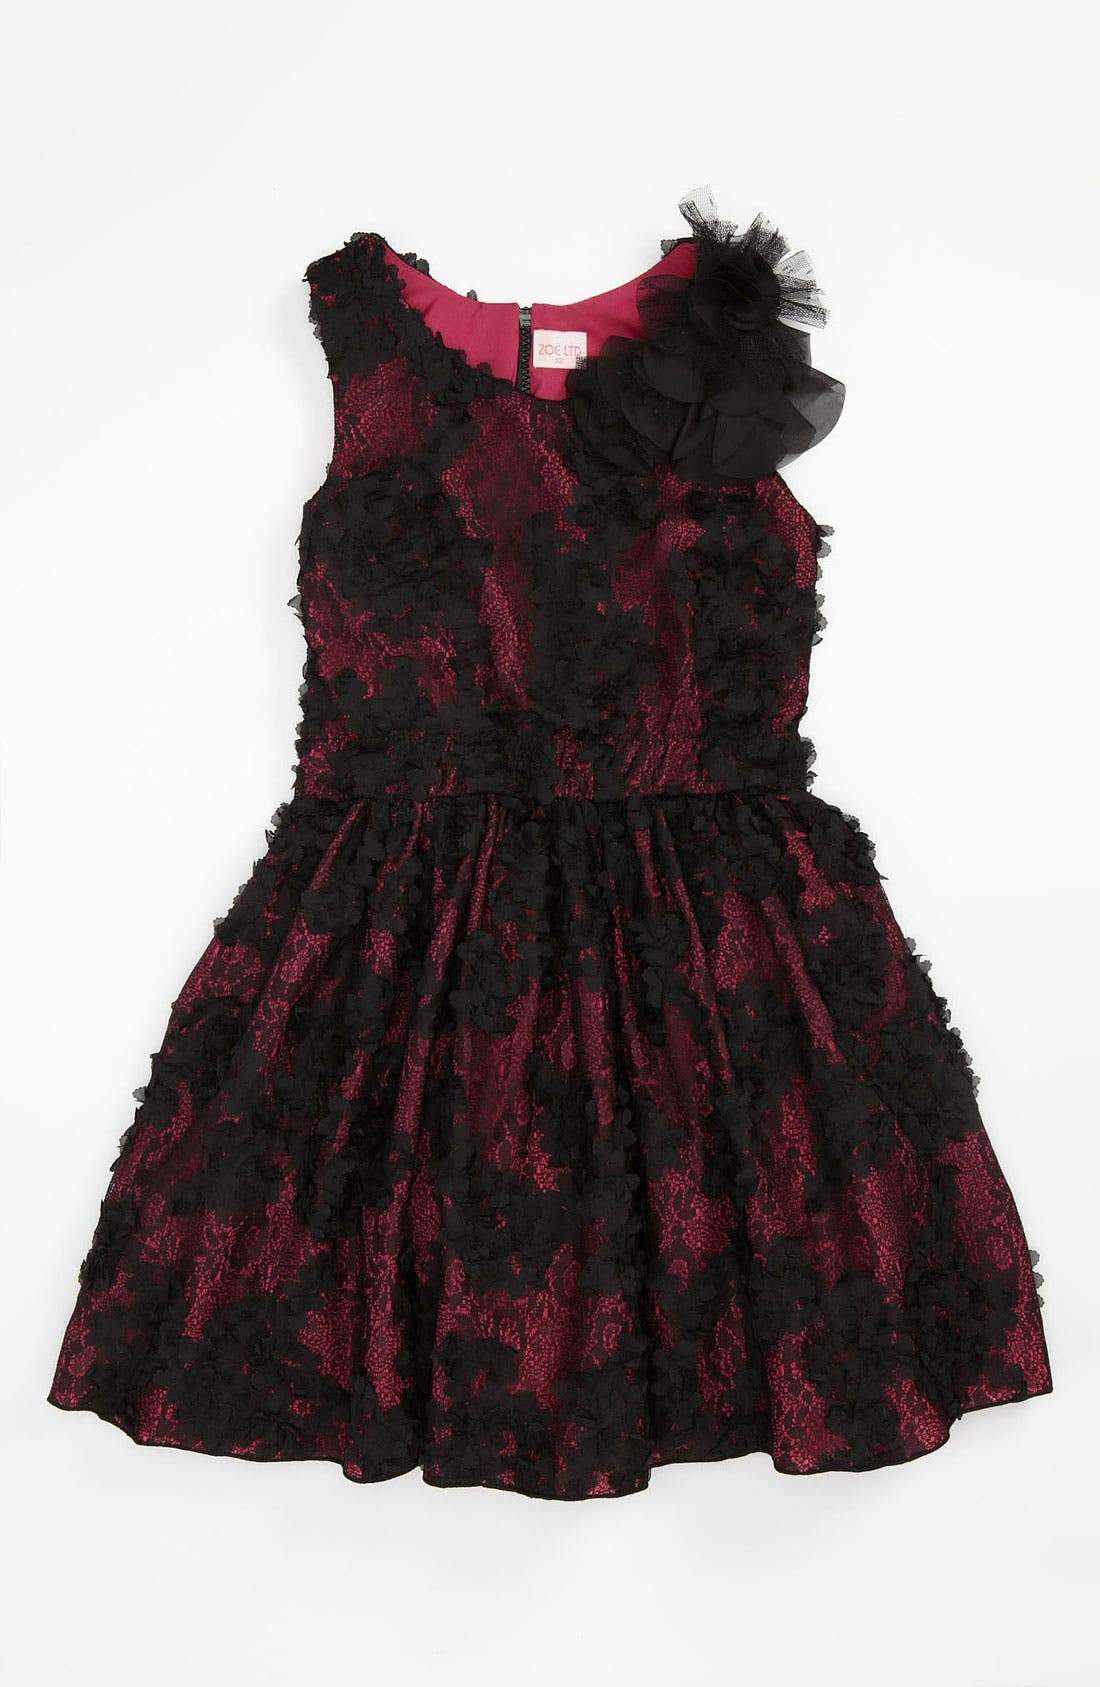 Main Image - Zoe Ltd Floral Mesh Dress (Big Girls)